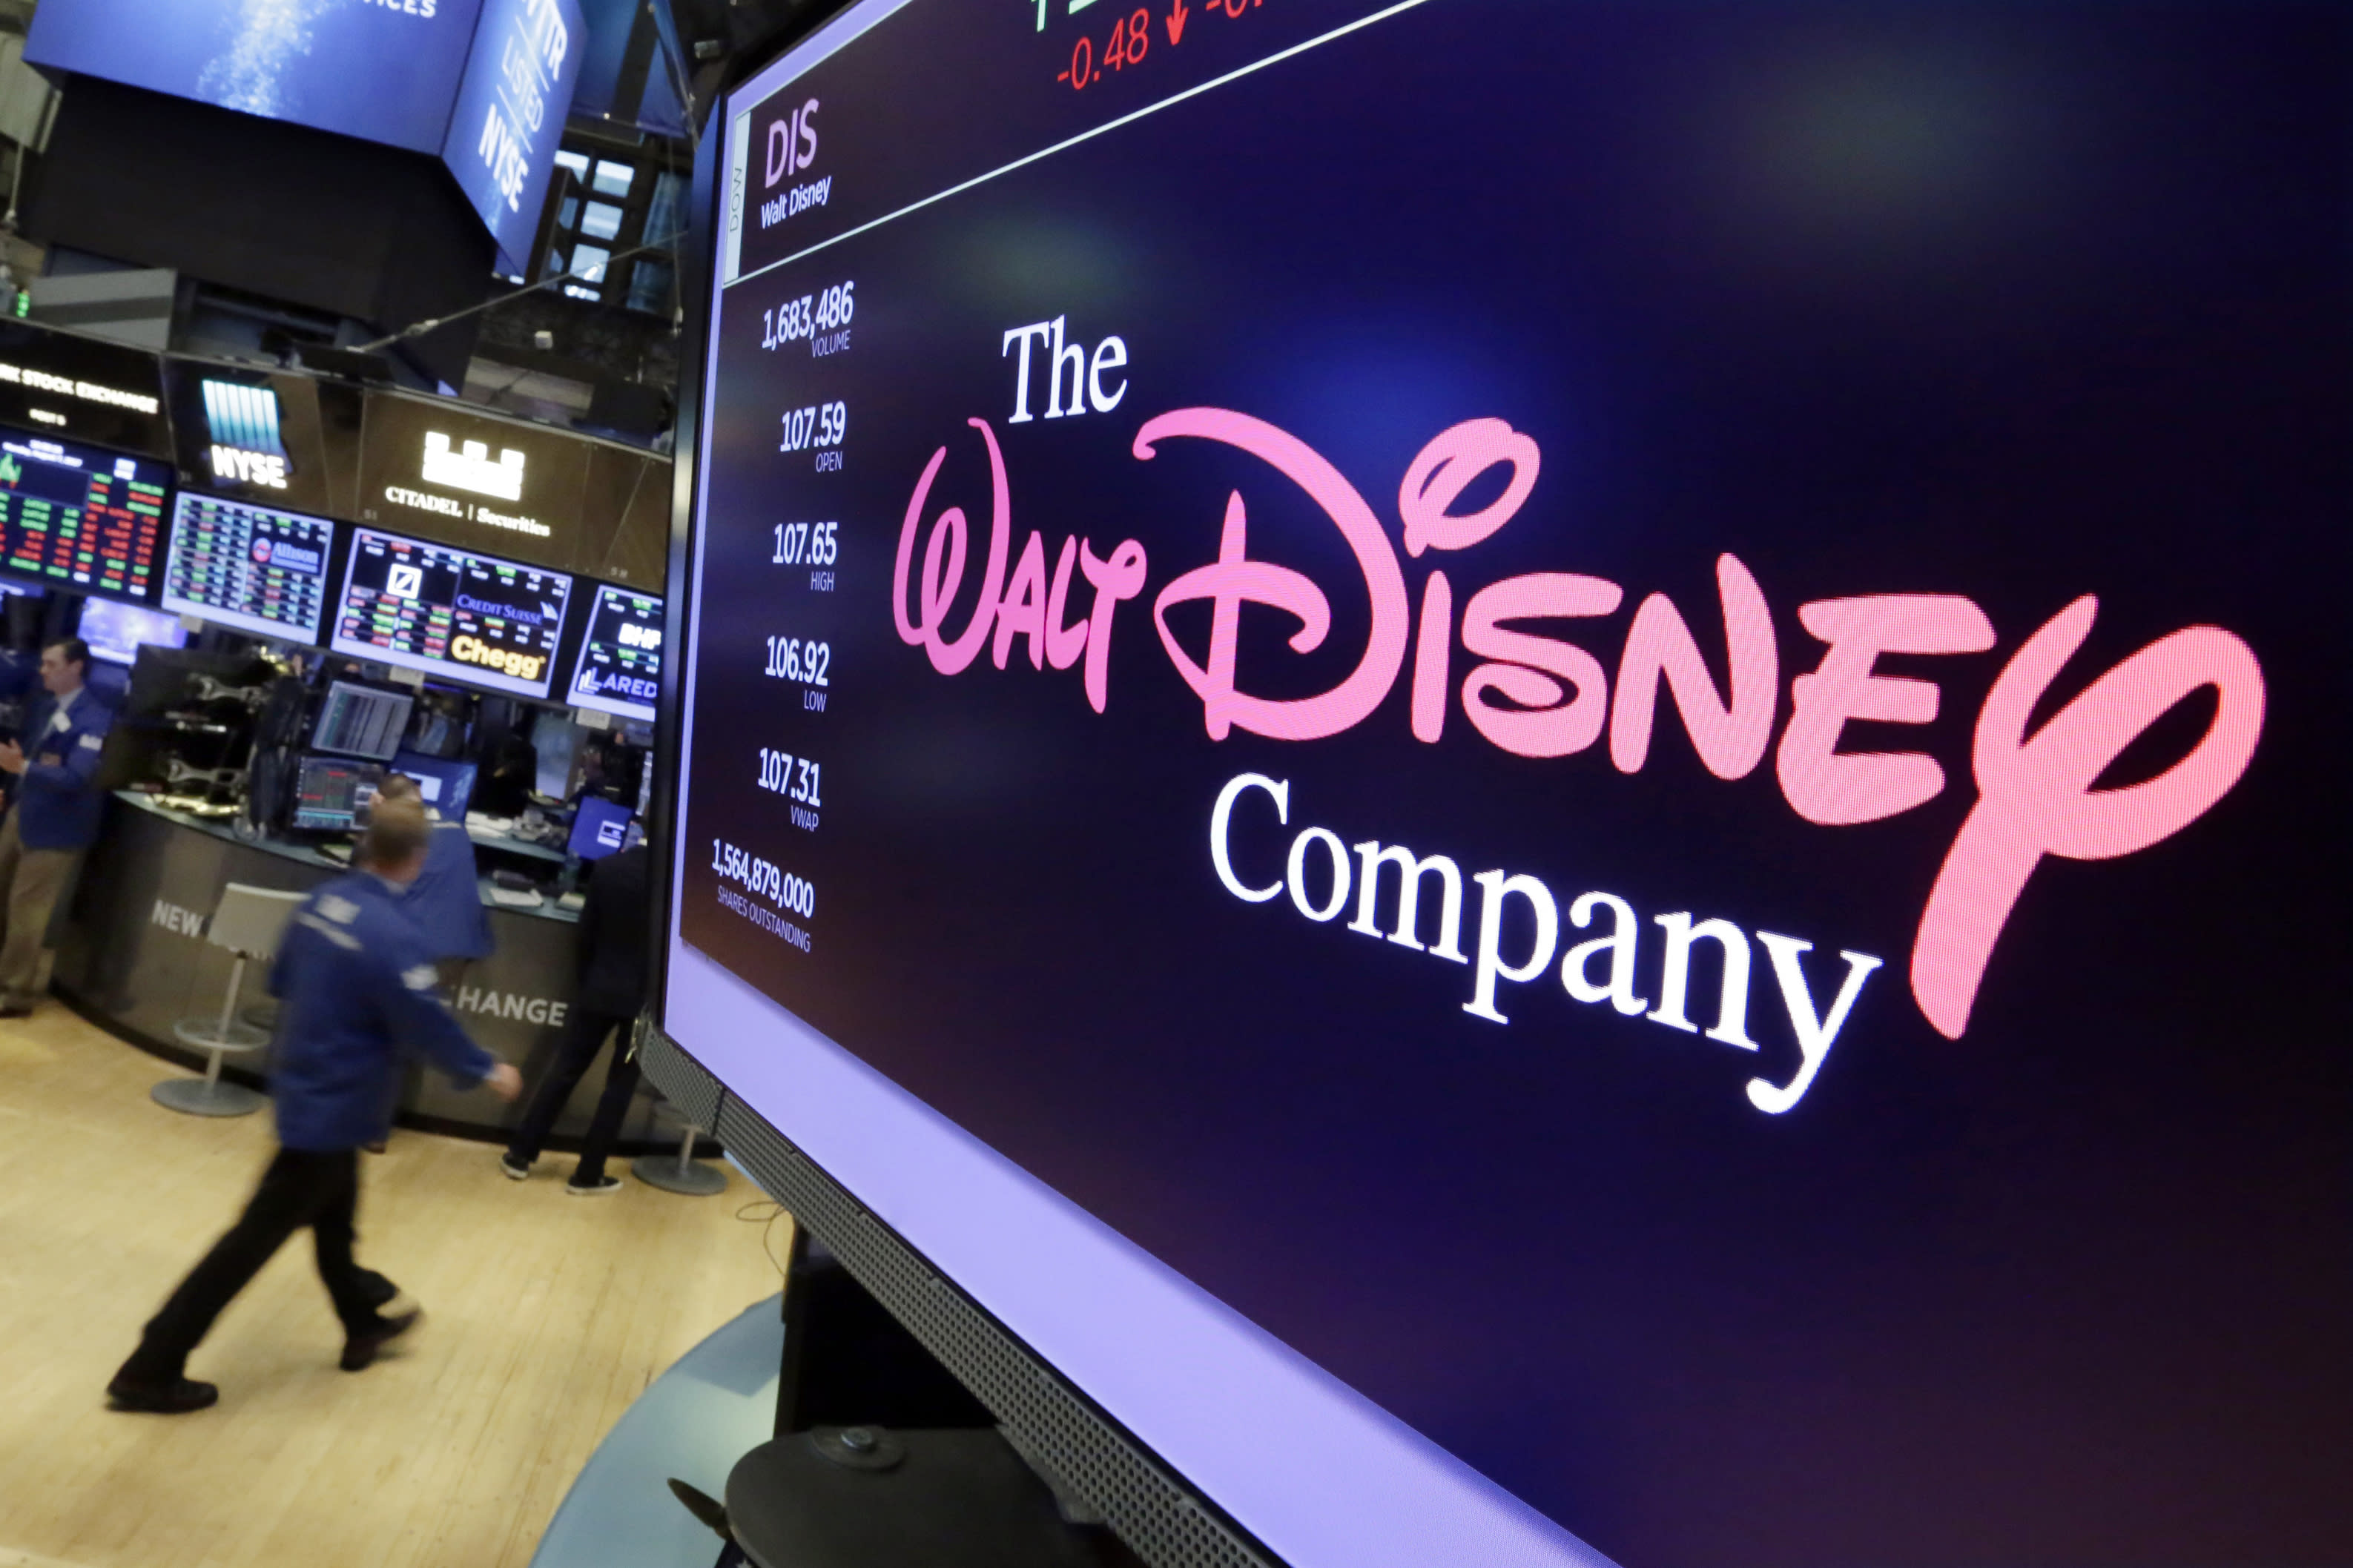 Disney posts 4Q loss as parks business, costs drag results